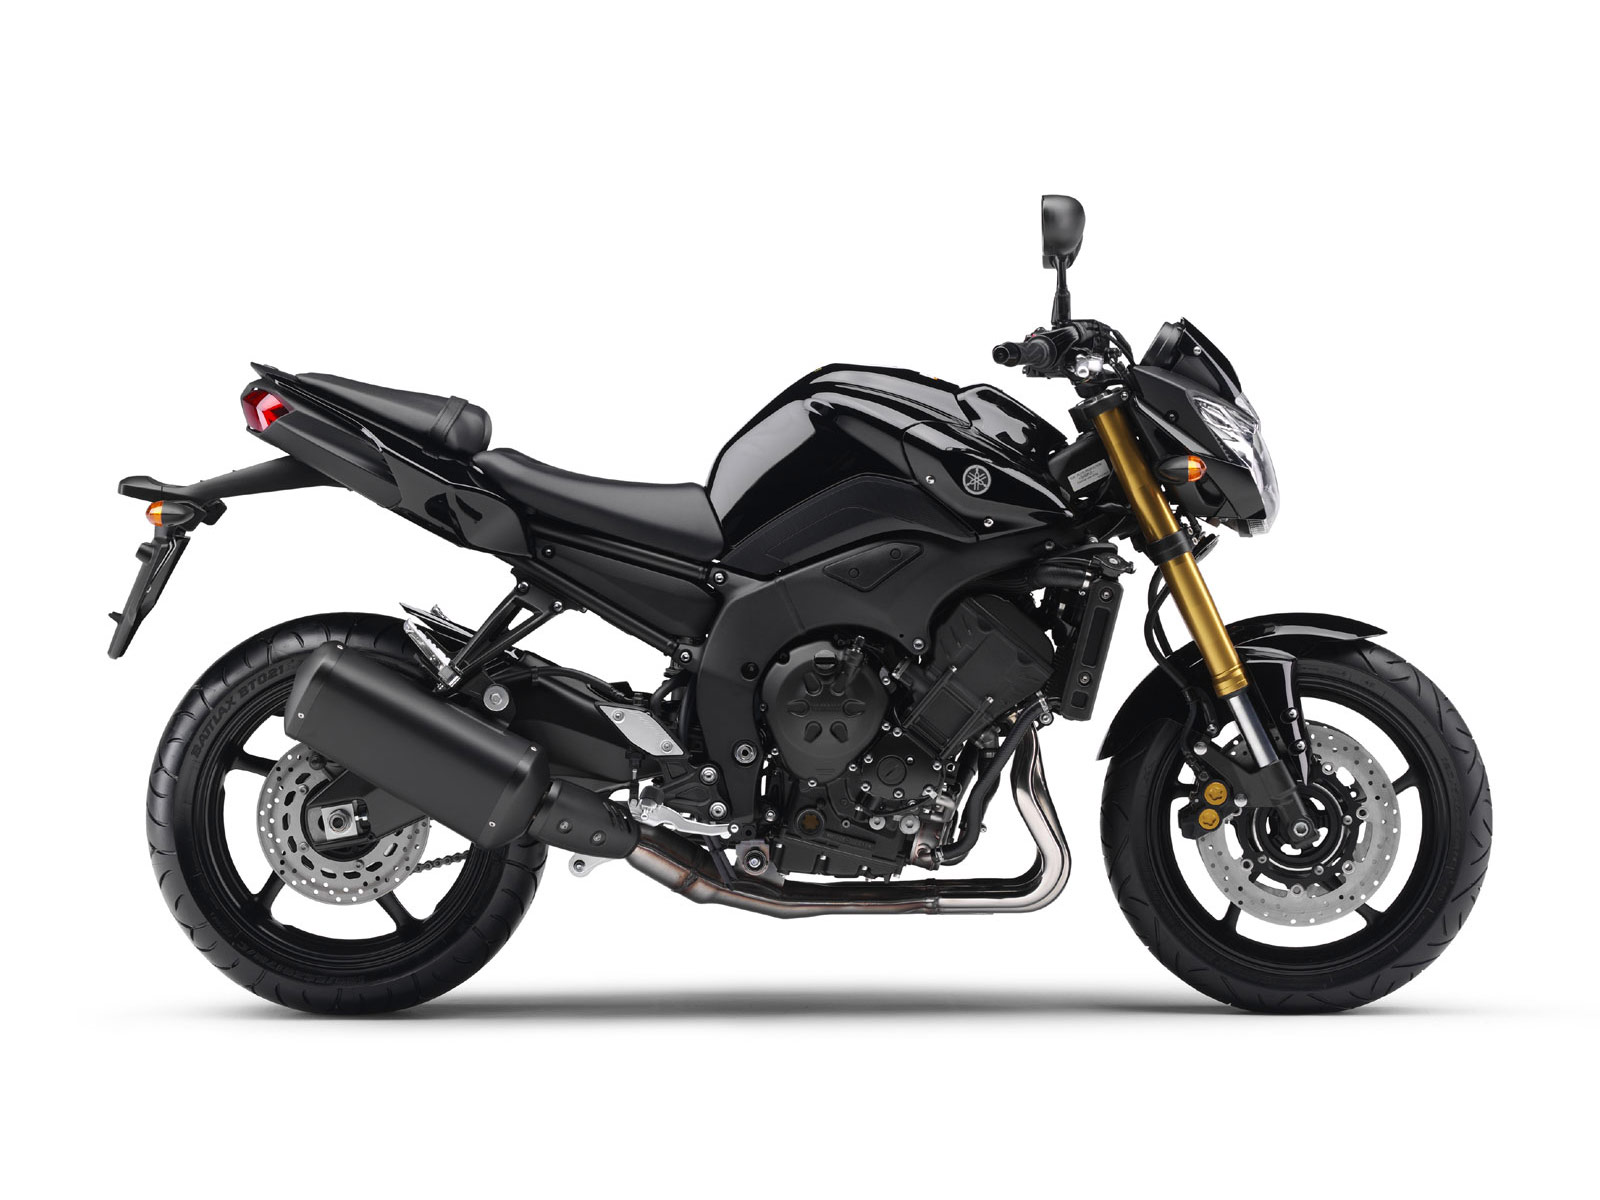 yamaha fz8 motorcycle pictures specifications 2011